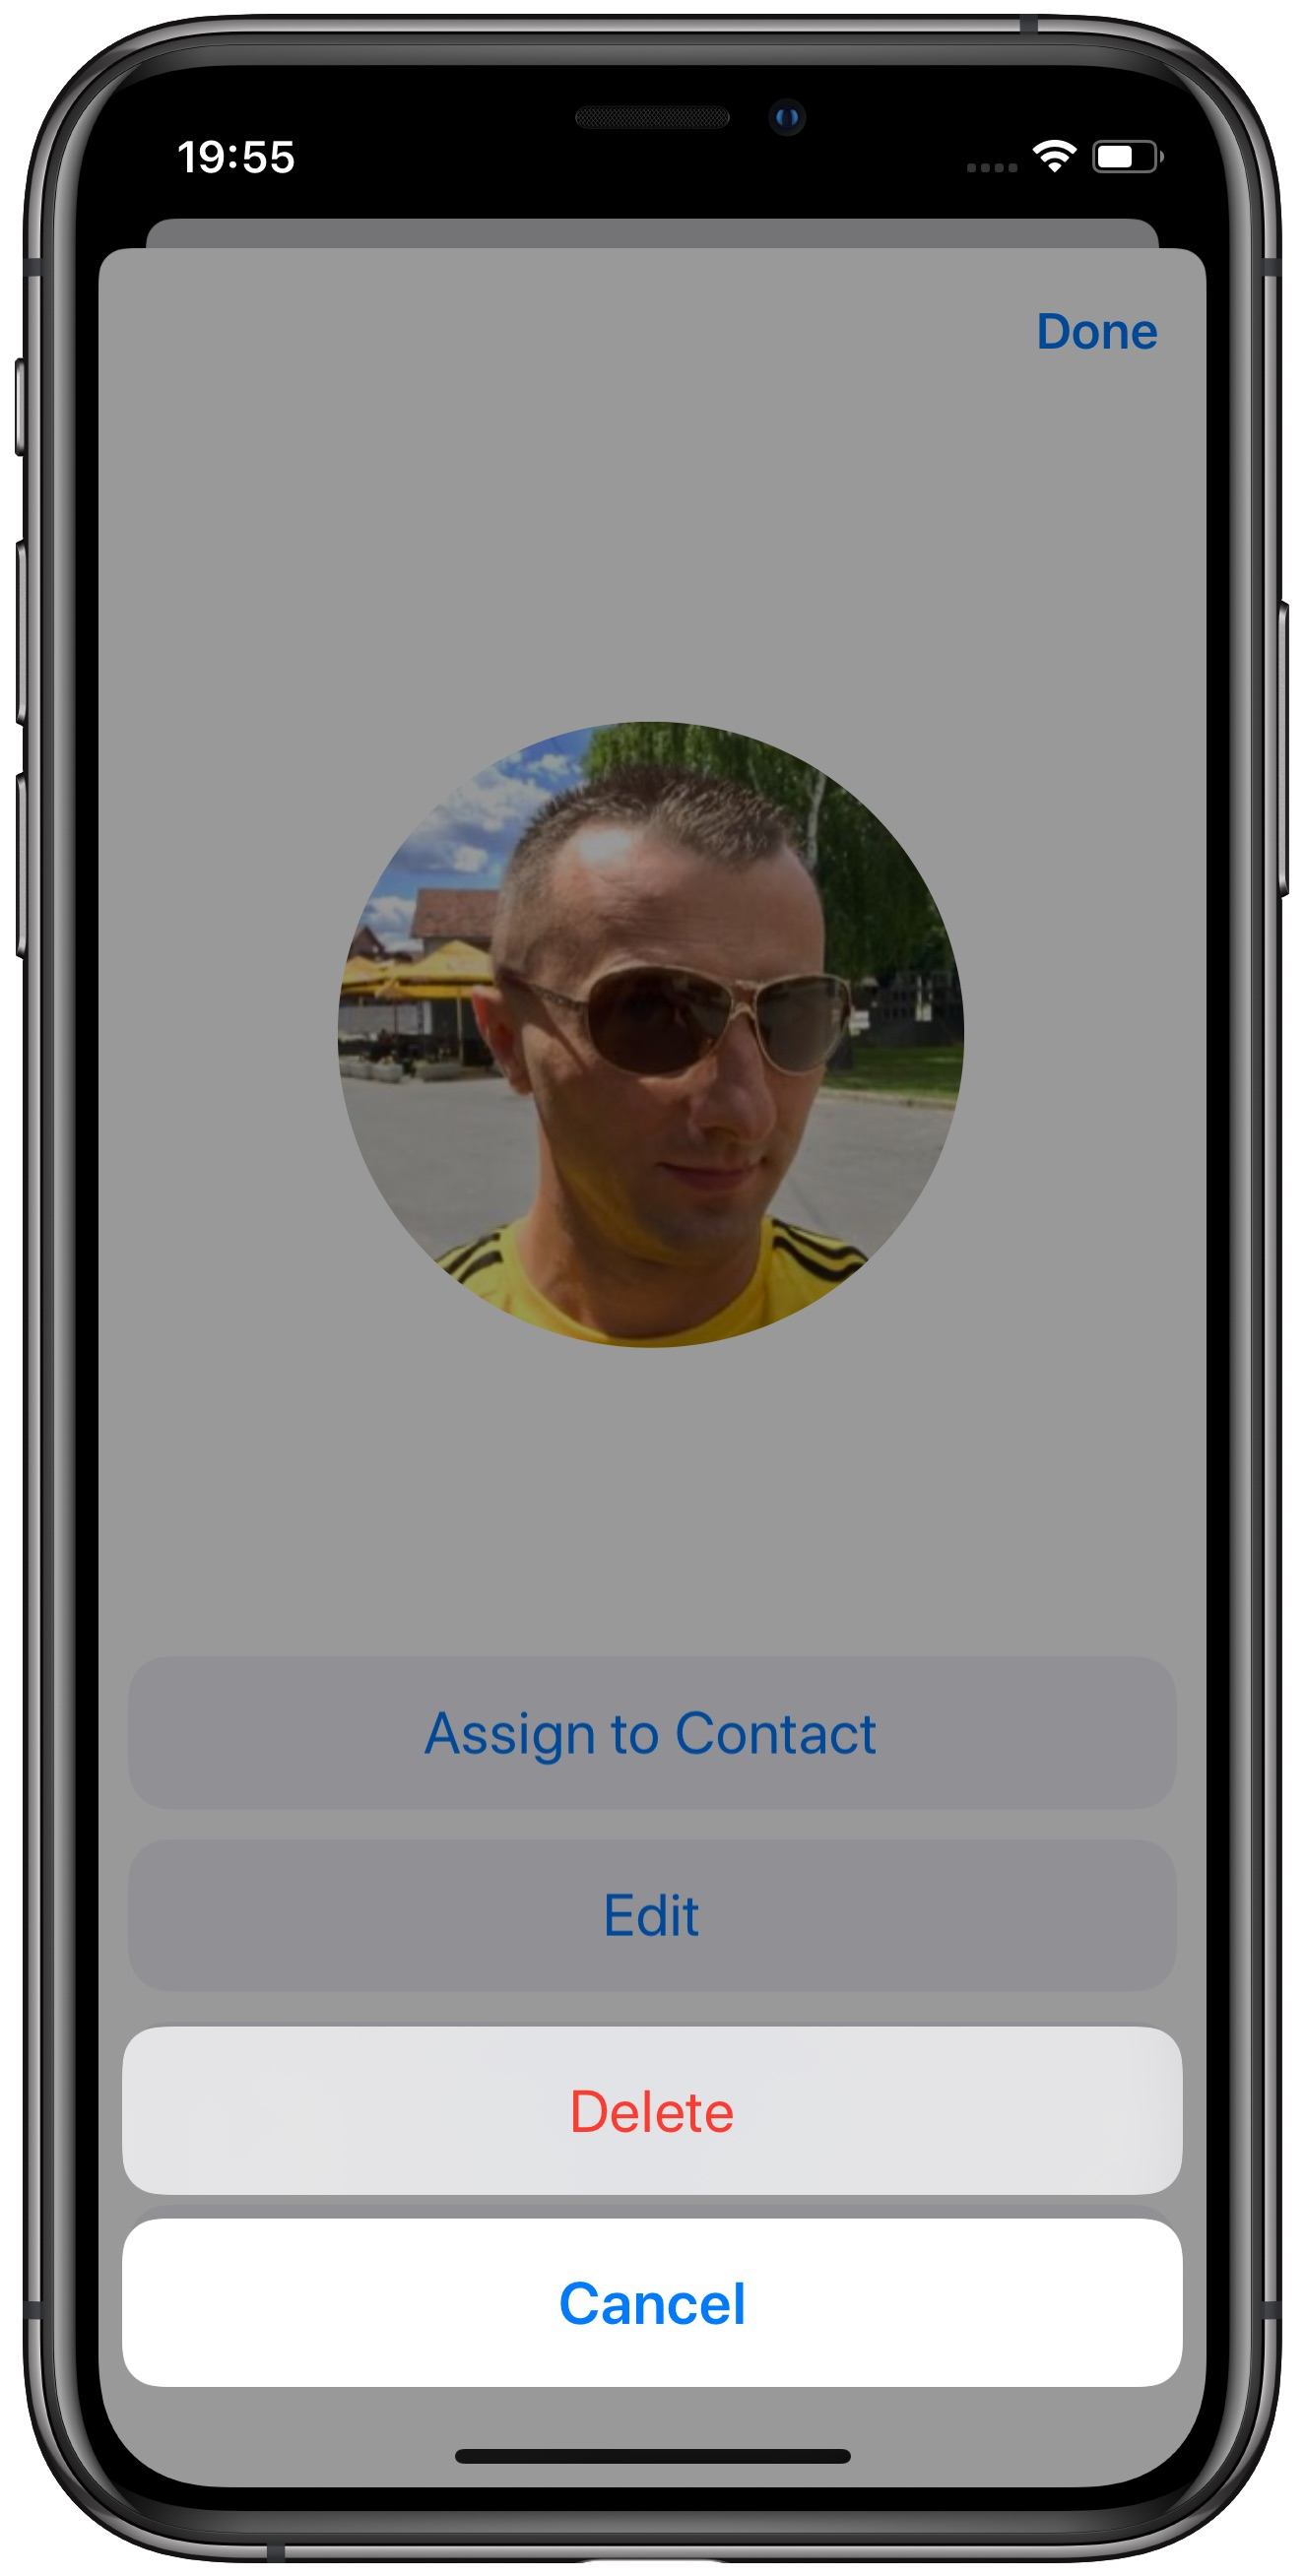 Creating an iMessage profile with a custom profile picture and